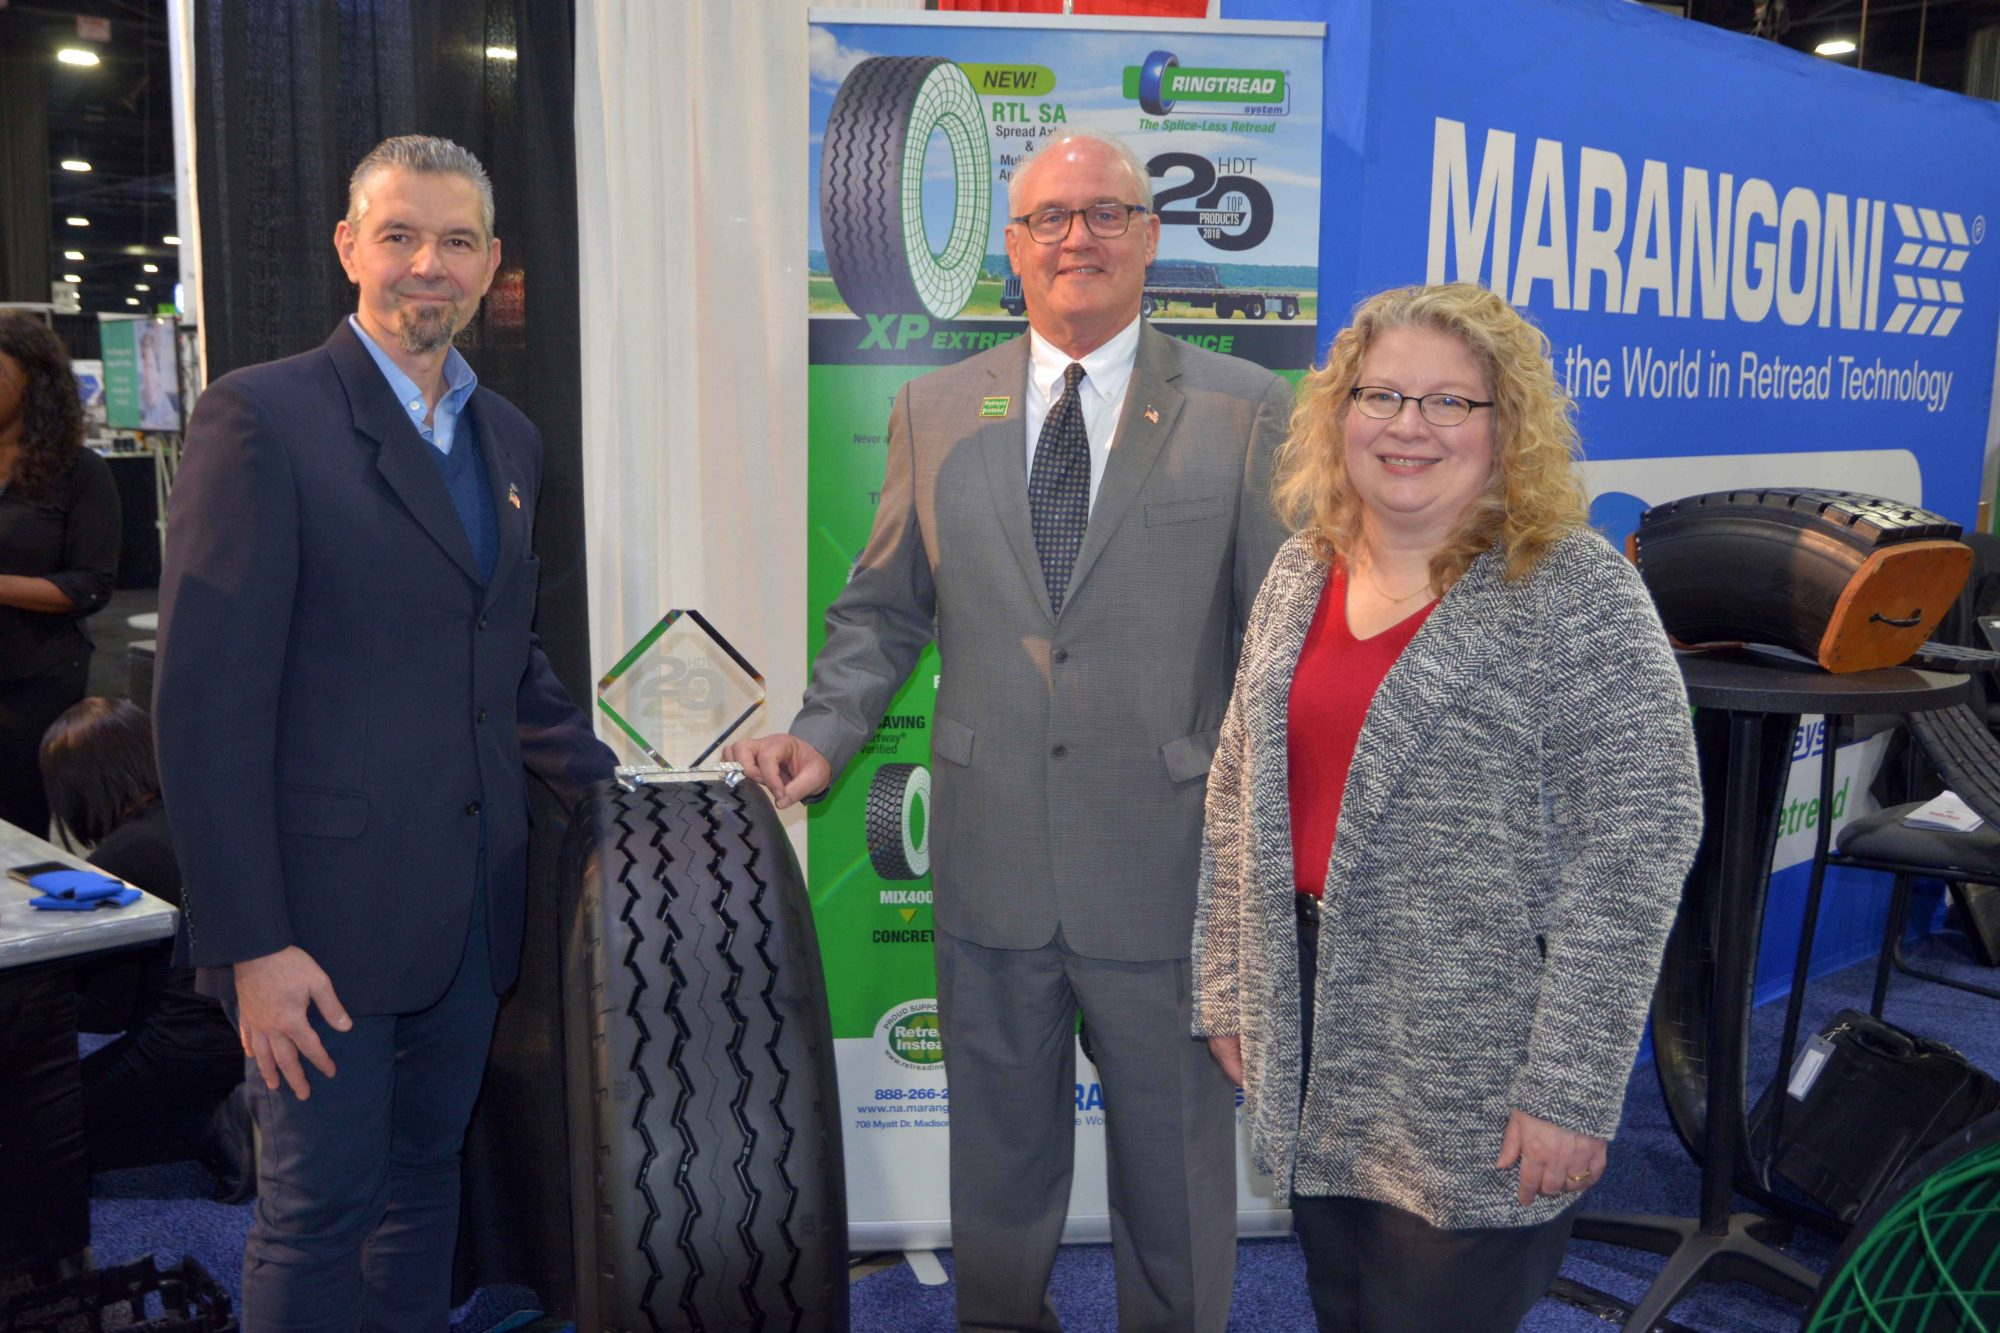 Marangoni receives award for their extreme performance Ringtread RTL SA